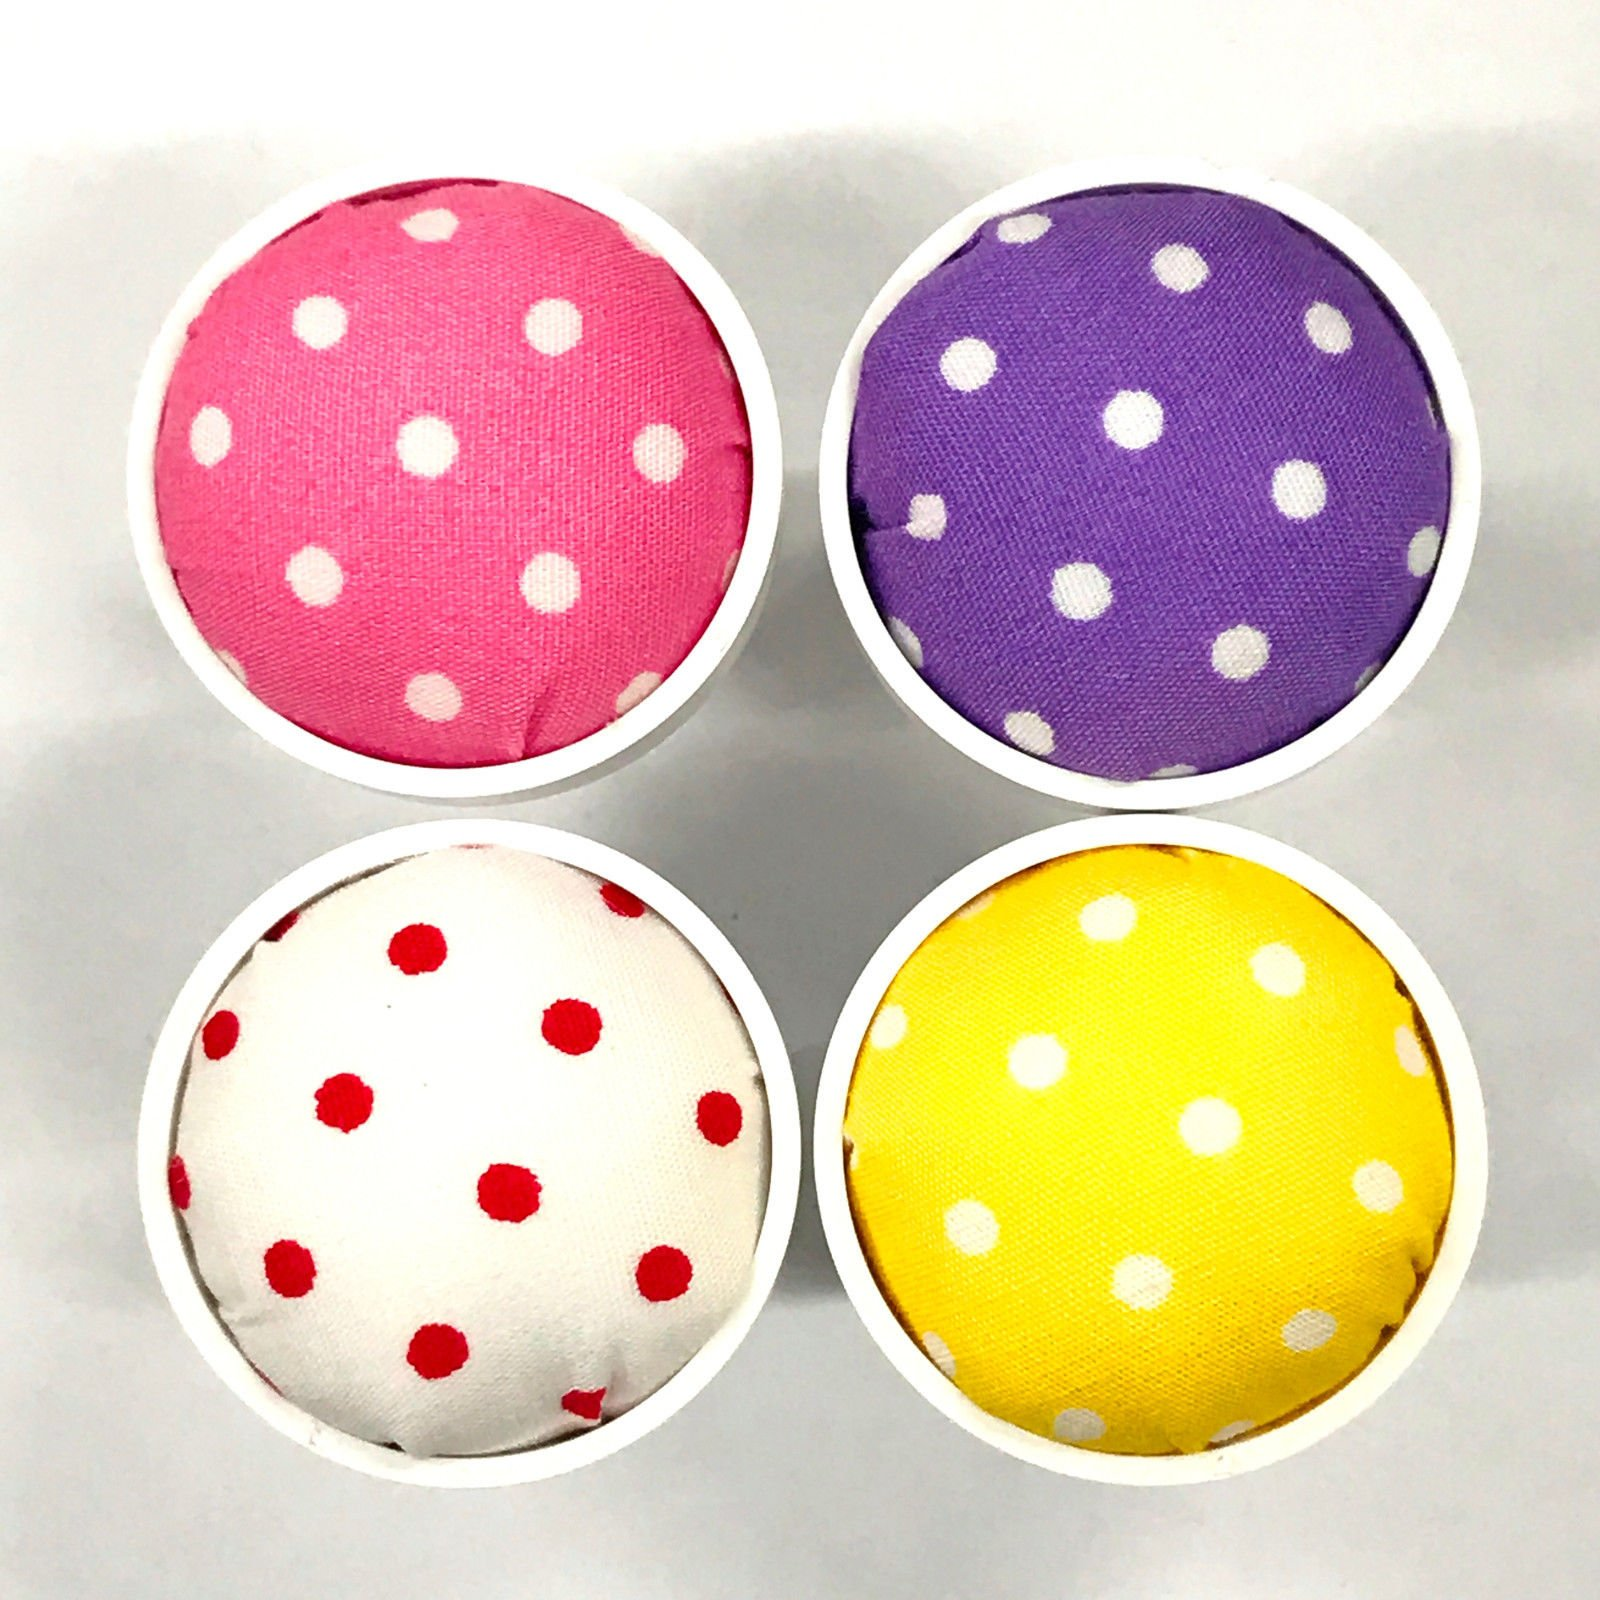 Attachable Pin Cushions (4 Color Set) For Janome Sewing Machines by Janome-1